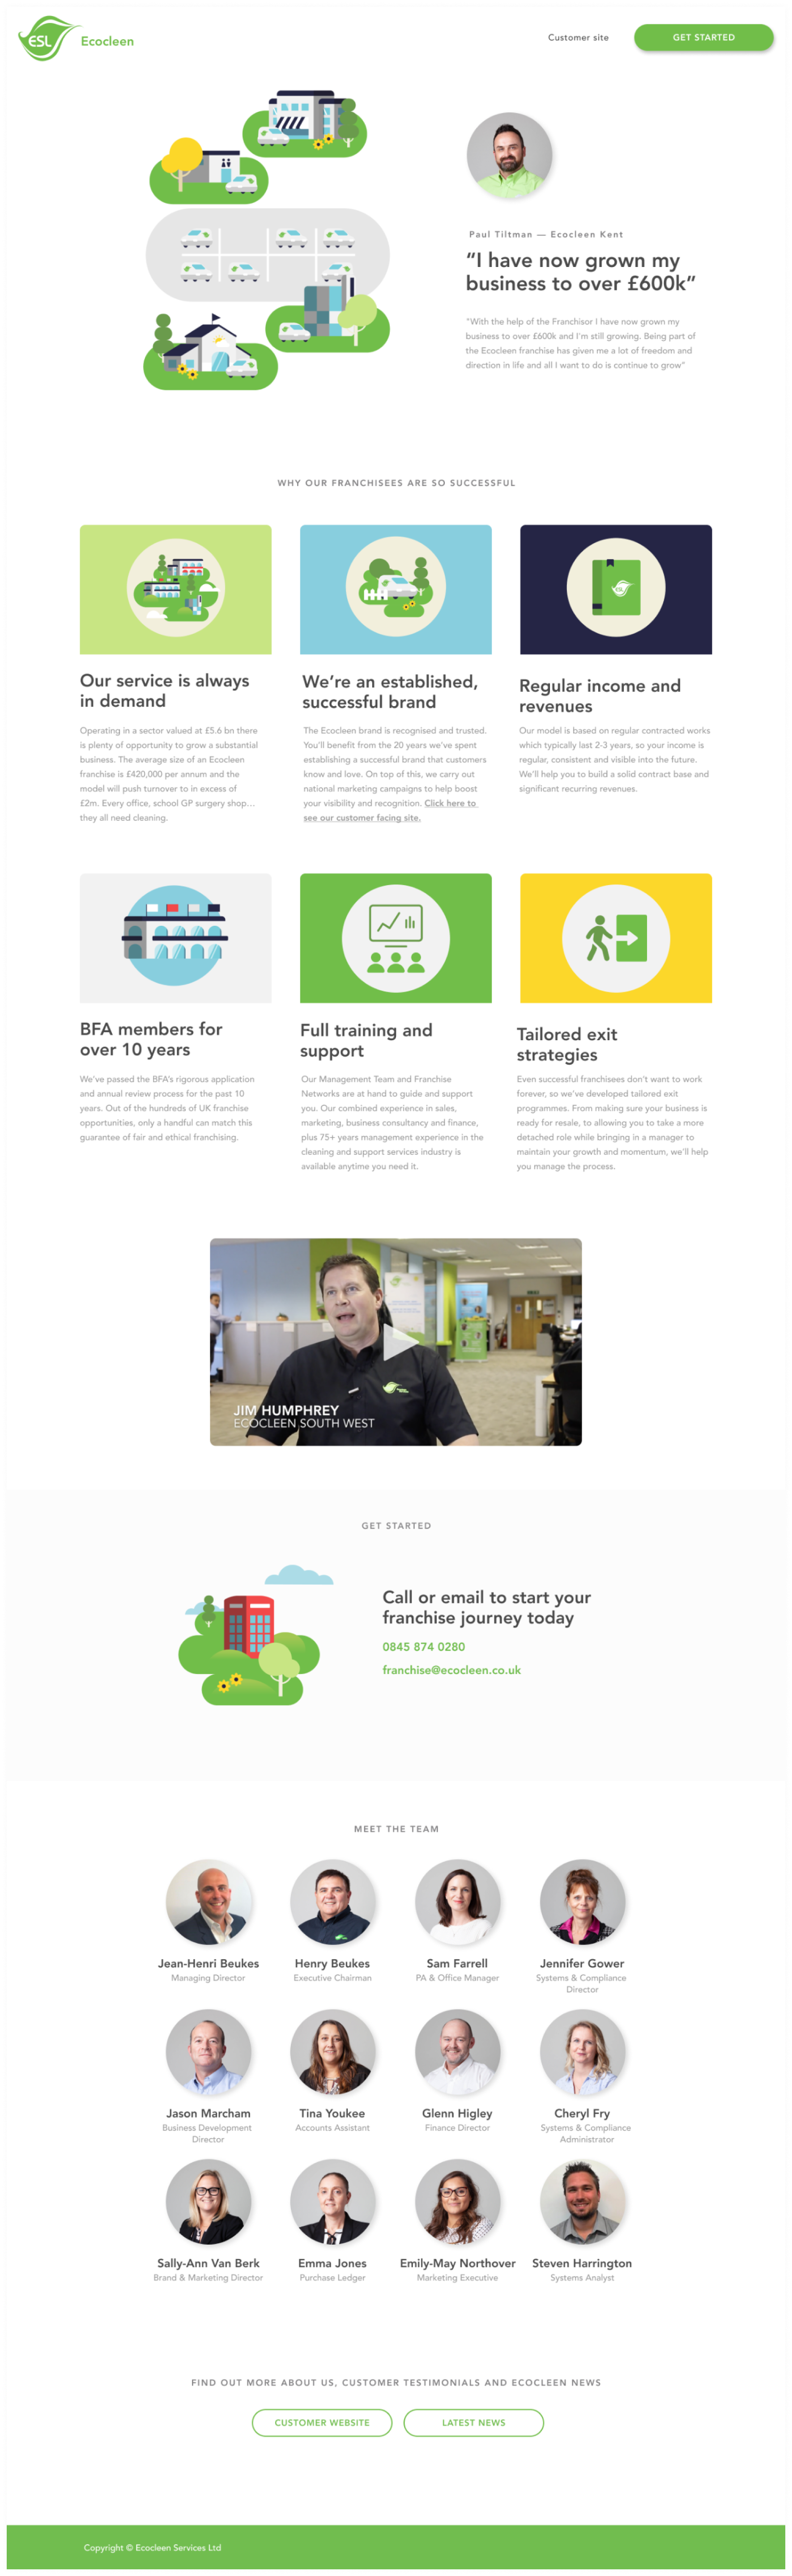 Ecocleen Franchise Website - Challenger brand for Cleaning Business - Site layout